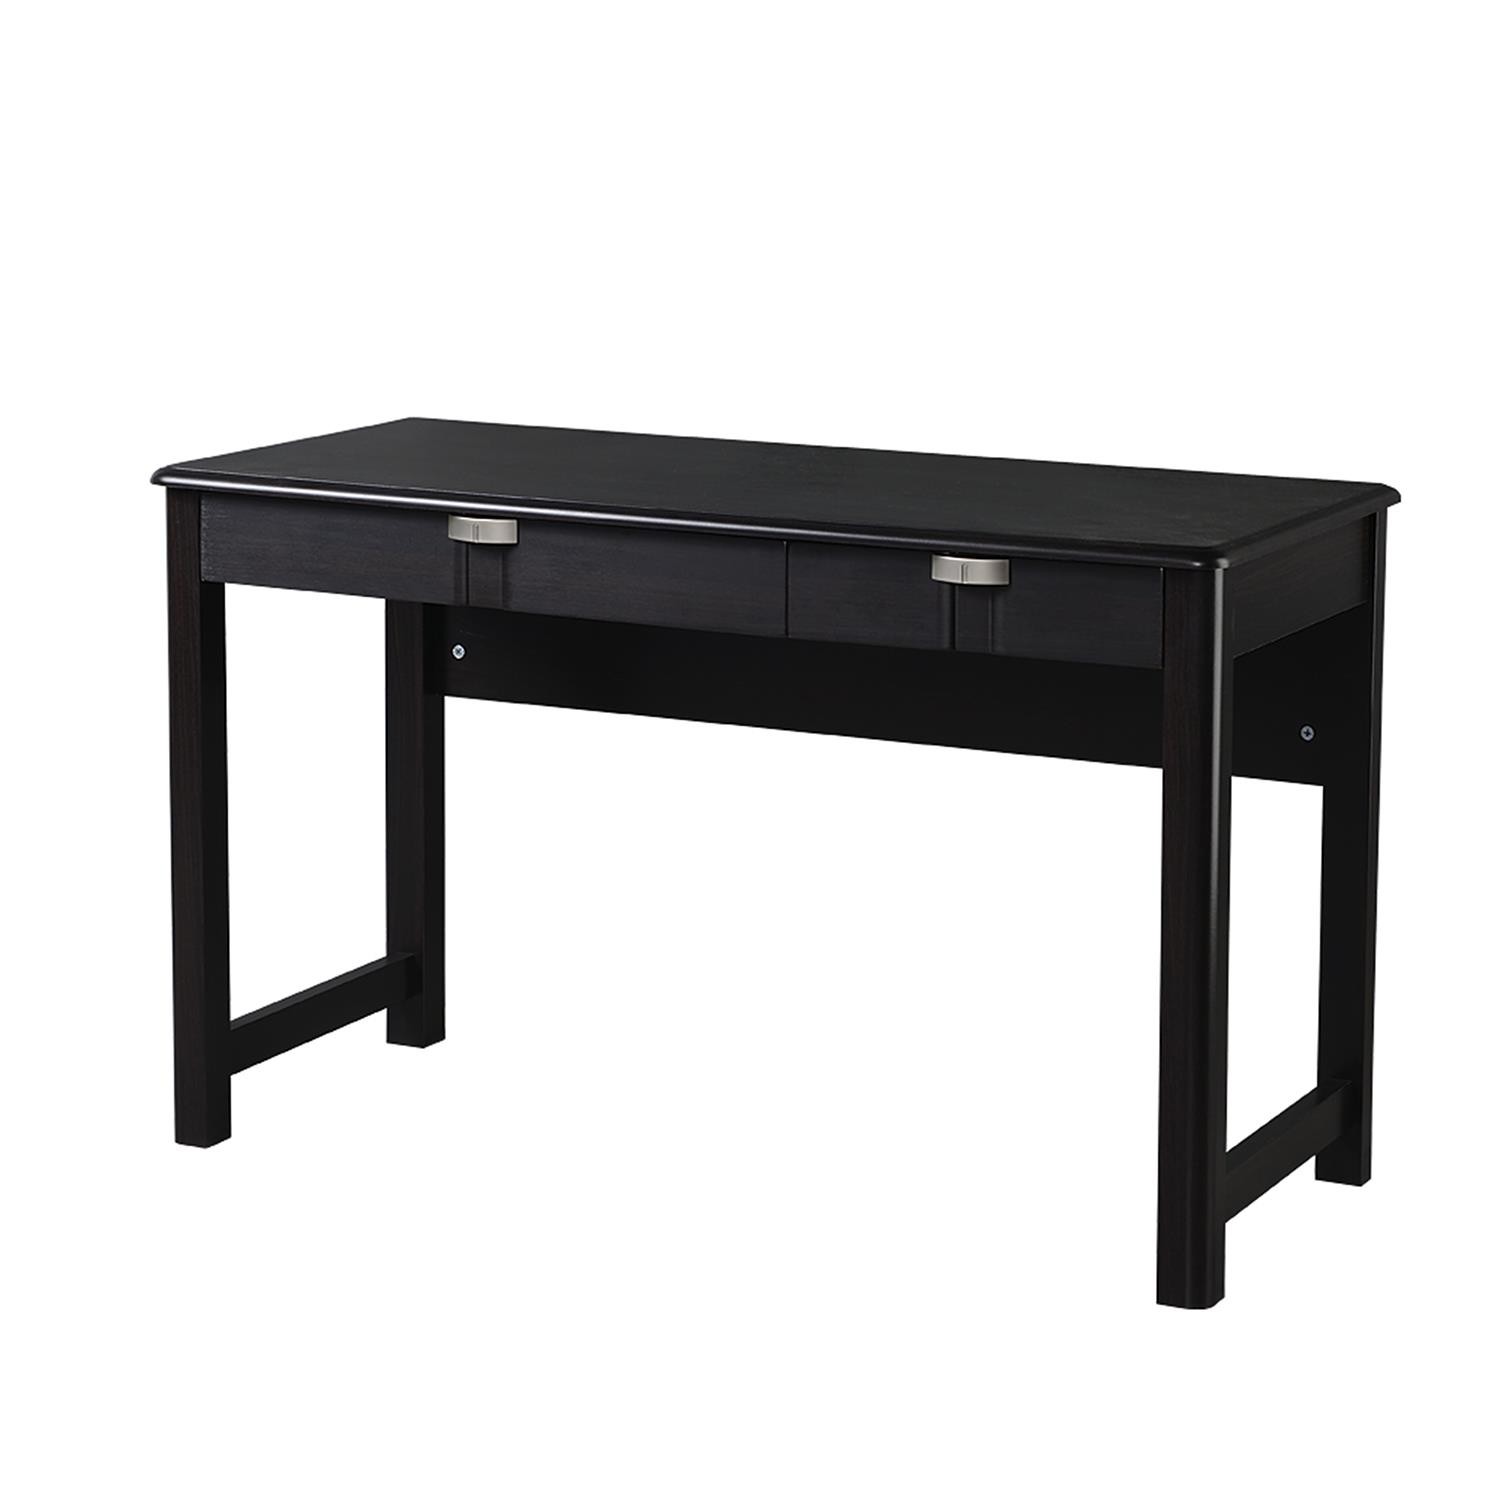 Techni mobili modern writing desk with storage